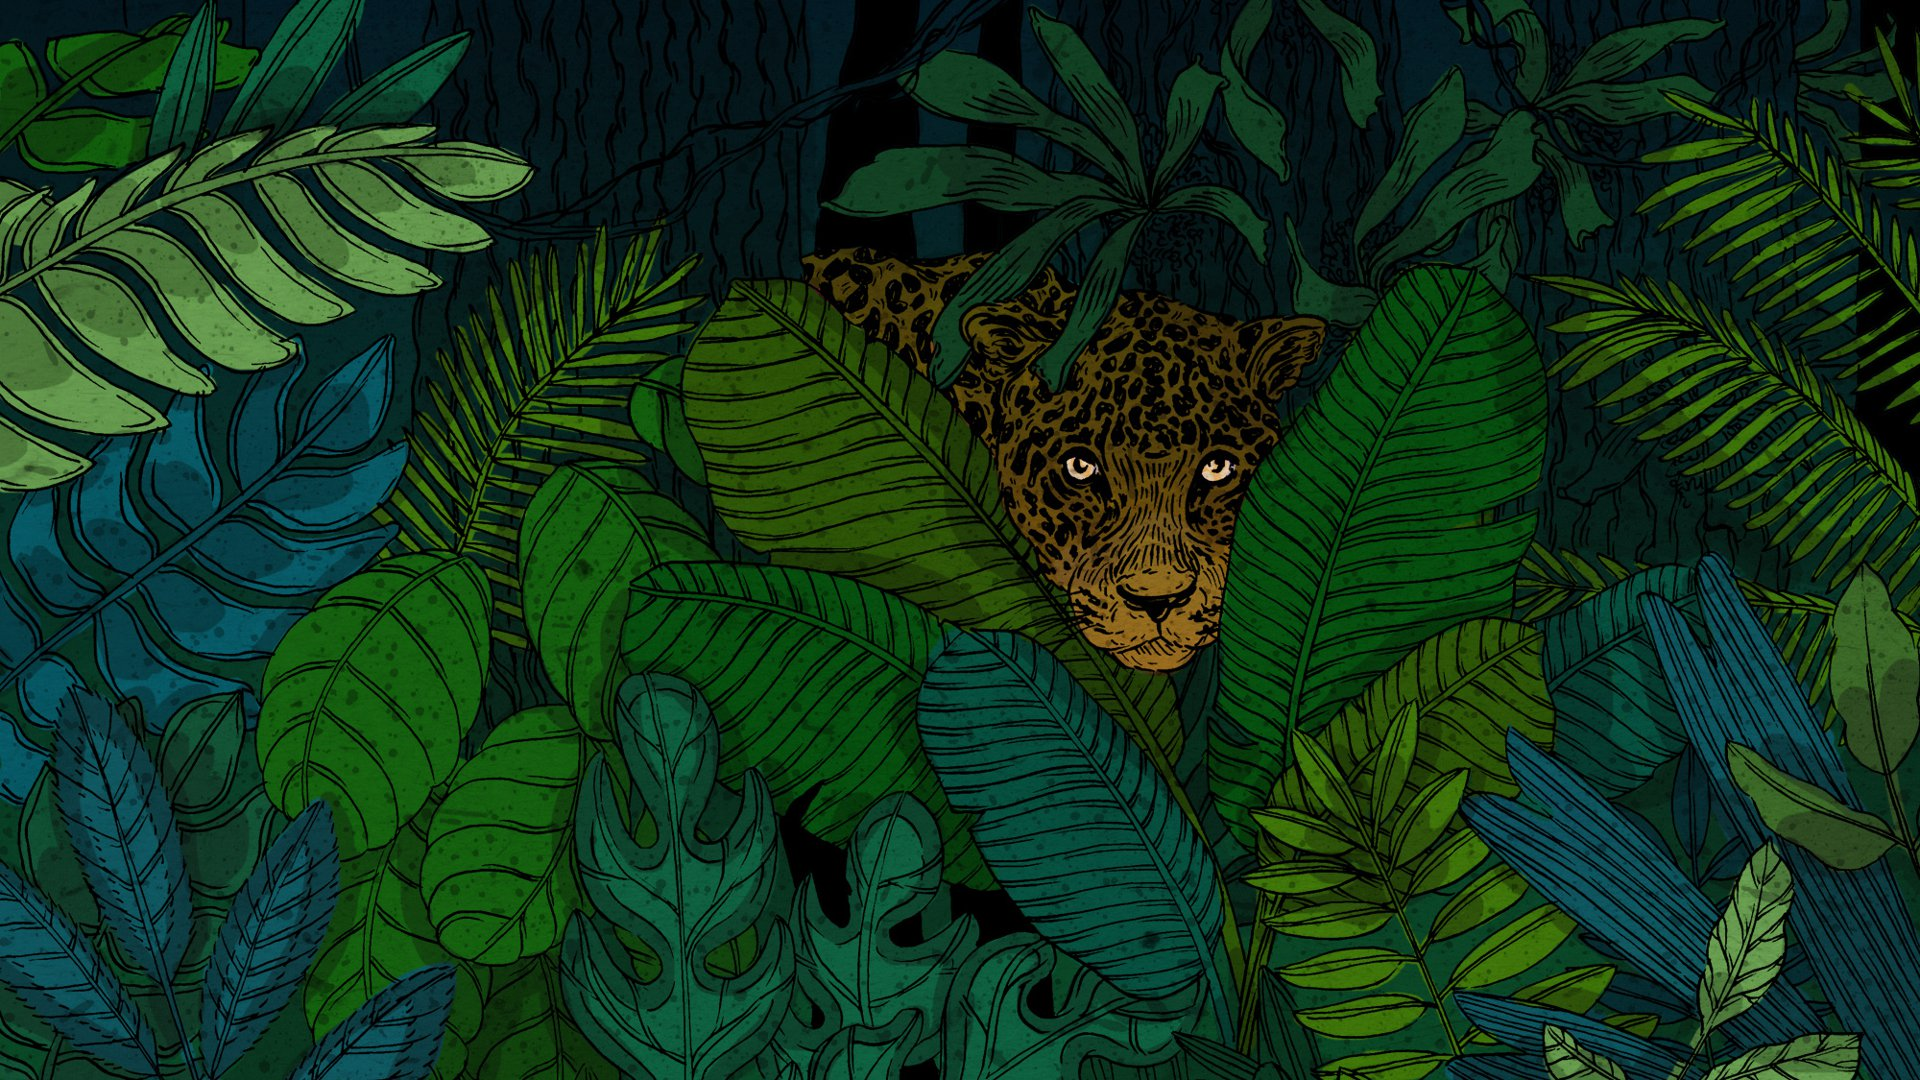 An illustration of a jaguar peeking through plants in a jungle